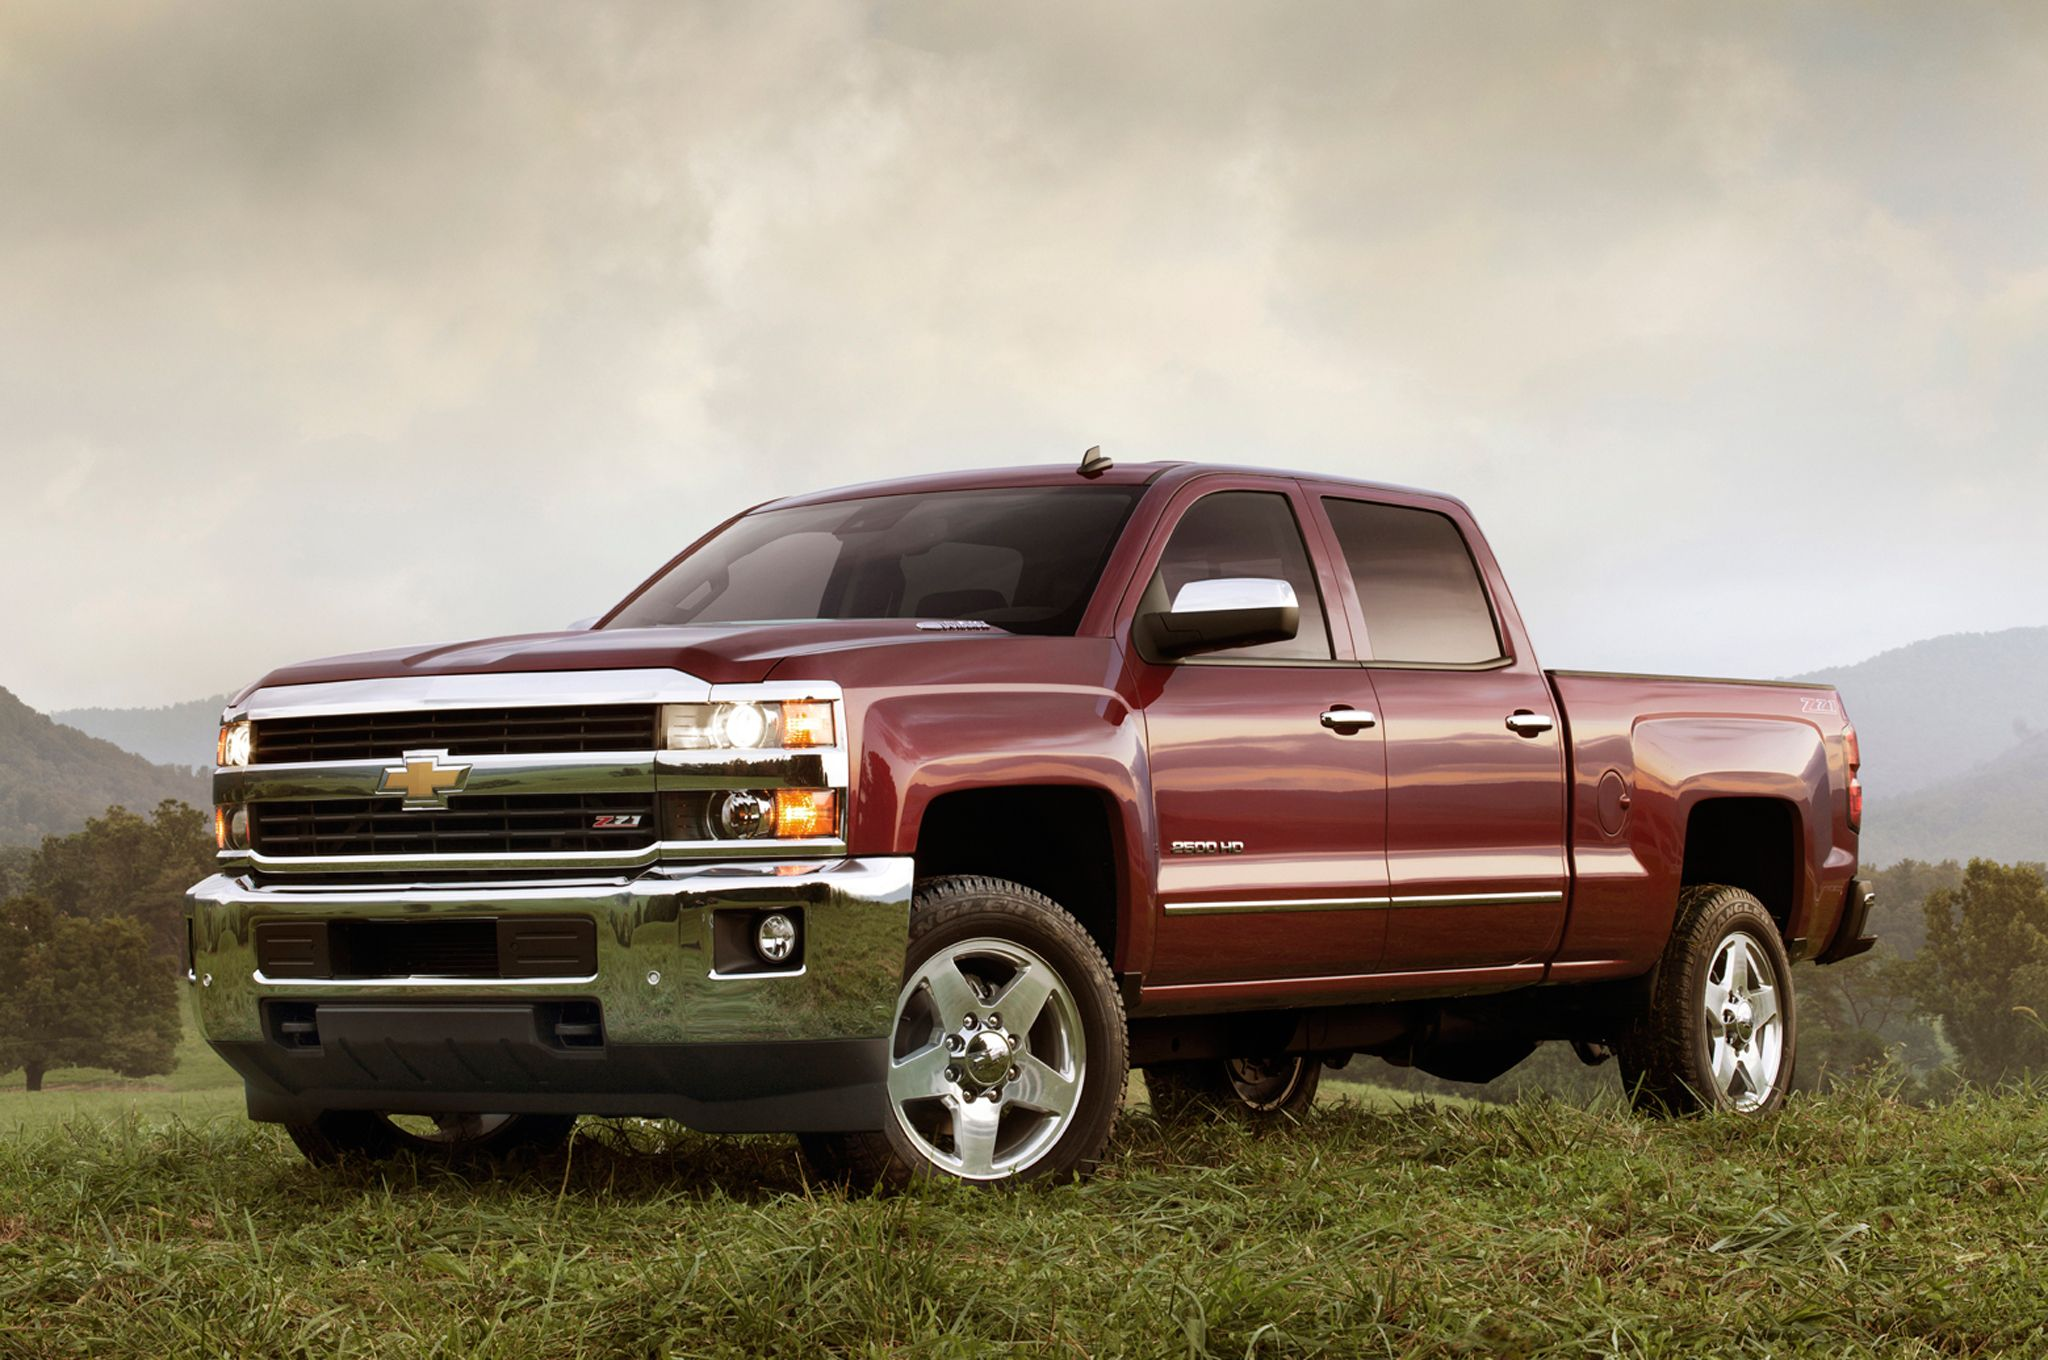 The 2015 chevy silverado comes as 2500 hd and 3500 hd options the numbers signifying the power that the truck has within itself